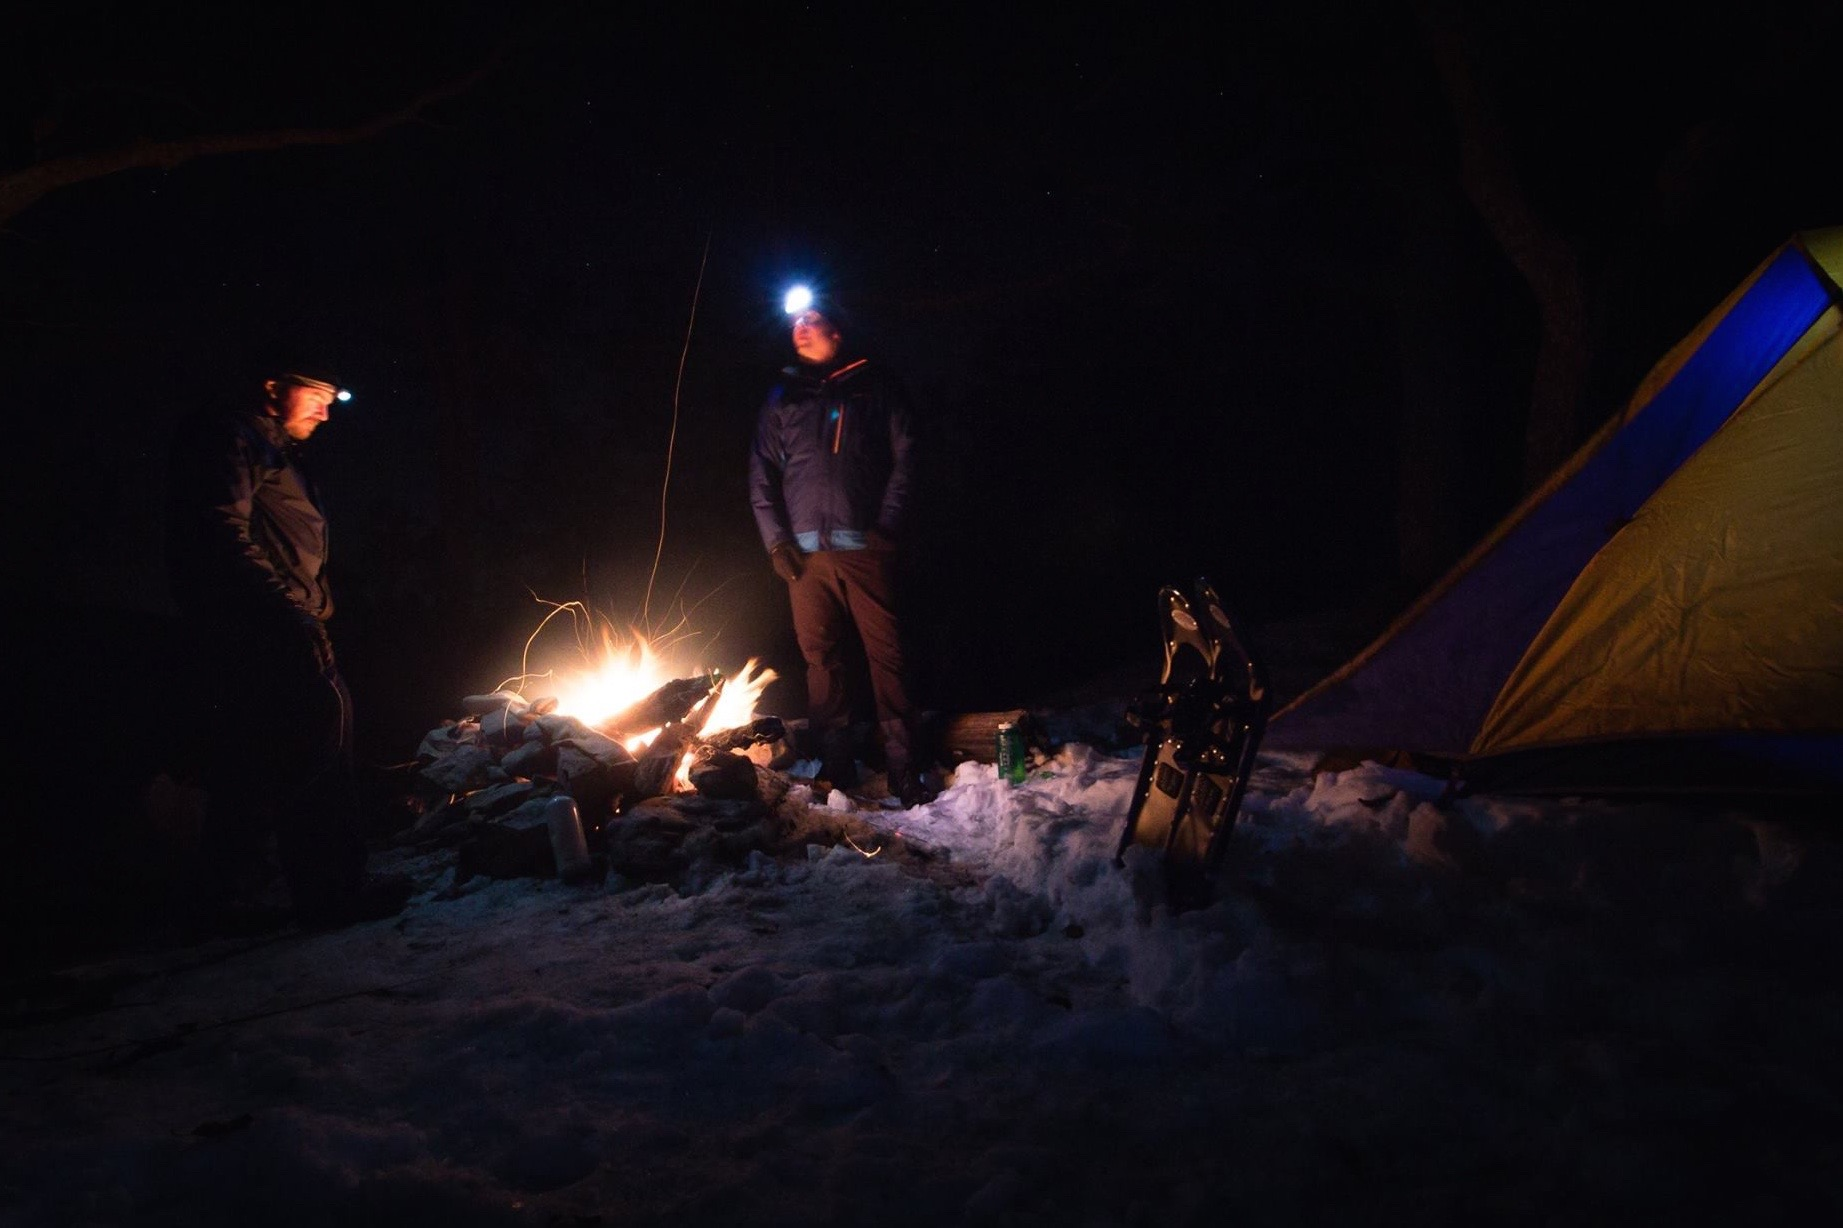 Winter camping in Virginia's Blue Ridge Mountains. (Photo by  Thomas Cluderay )